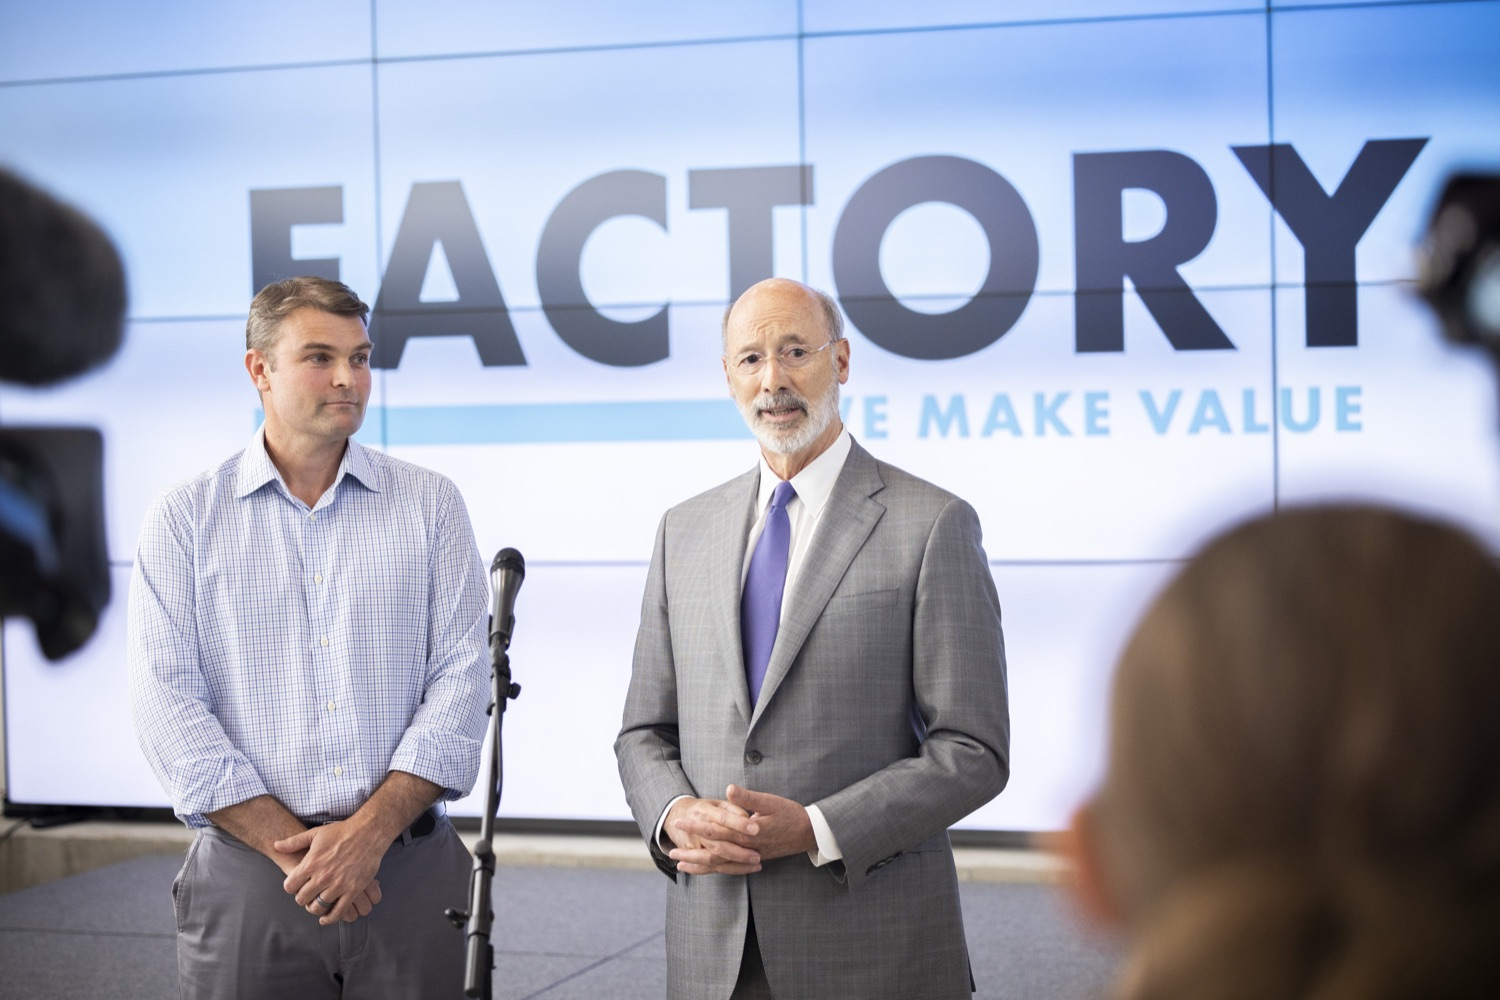 """<a href=""""https://filesource.wostreaming.net/commonwealthofpa/photo/18941_gov_economicDevelopment_dz_014.jpg"""" target=""""_blank"""">⇣Download Photo<br></a>Pennsylvania Governor Tom Wolf and Keith Caldwell, Partner  Factory LLC speaking with the press.  Governor Tom Wolf today visited Factory LLC in Bethlehem to tour the facility and highlight the importance of investing in Pennsylvanias start-up companies. During the visit, he met with companies affiliated with Factory, including Stuffed Puffs®, which received a $1 million funding proposal from the commonwealth in 2019 to expand its manufacturing operations and create jobs, Mikeys®, Pipcorn®, Honey Stinger®, and ROAR® Organic. Bethlehem, PA  July 19, 2021"""